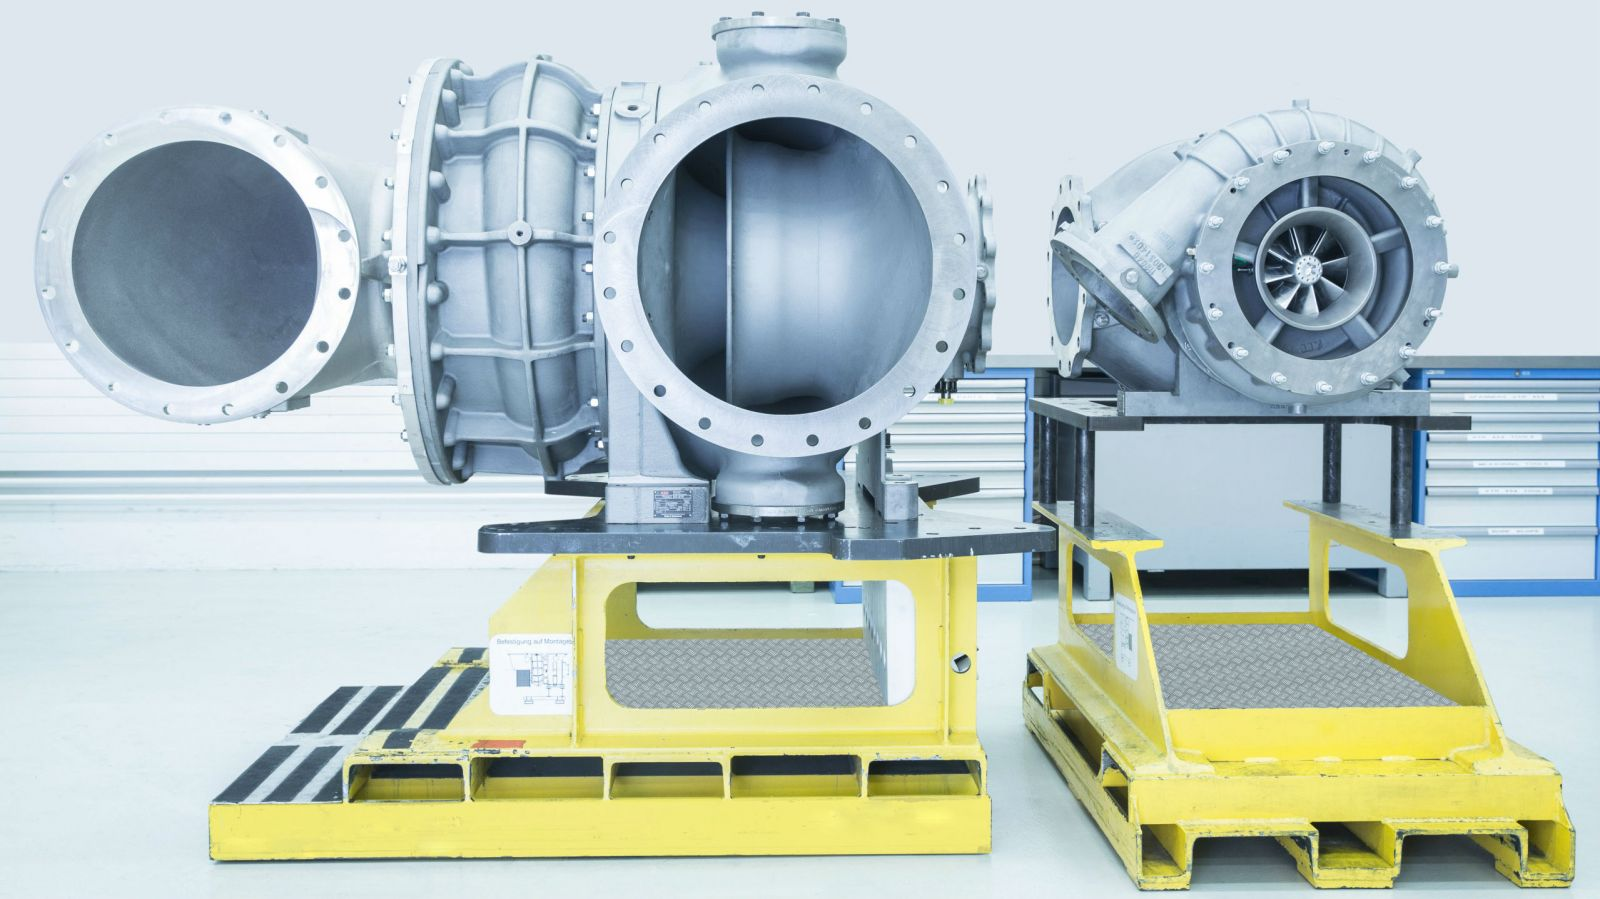 ABB two-stage turbocharger Power2 800-M